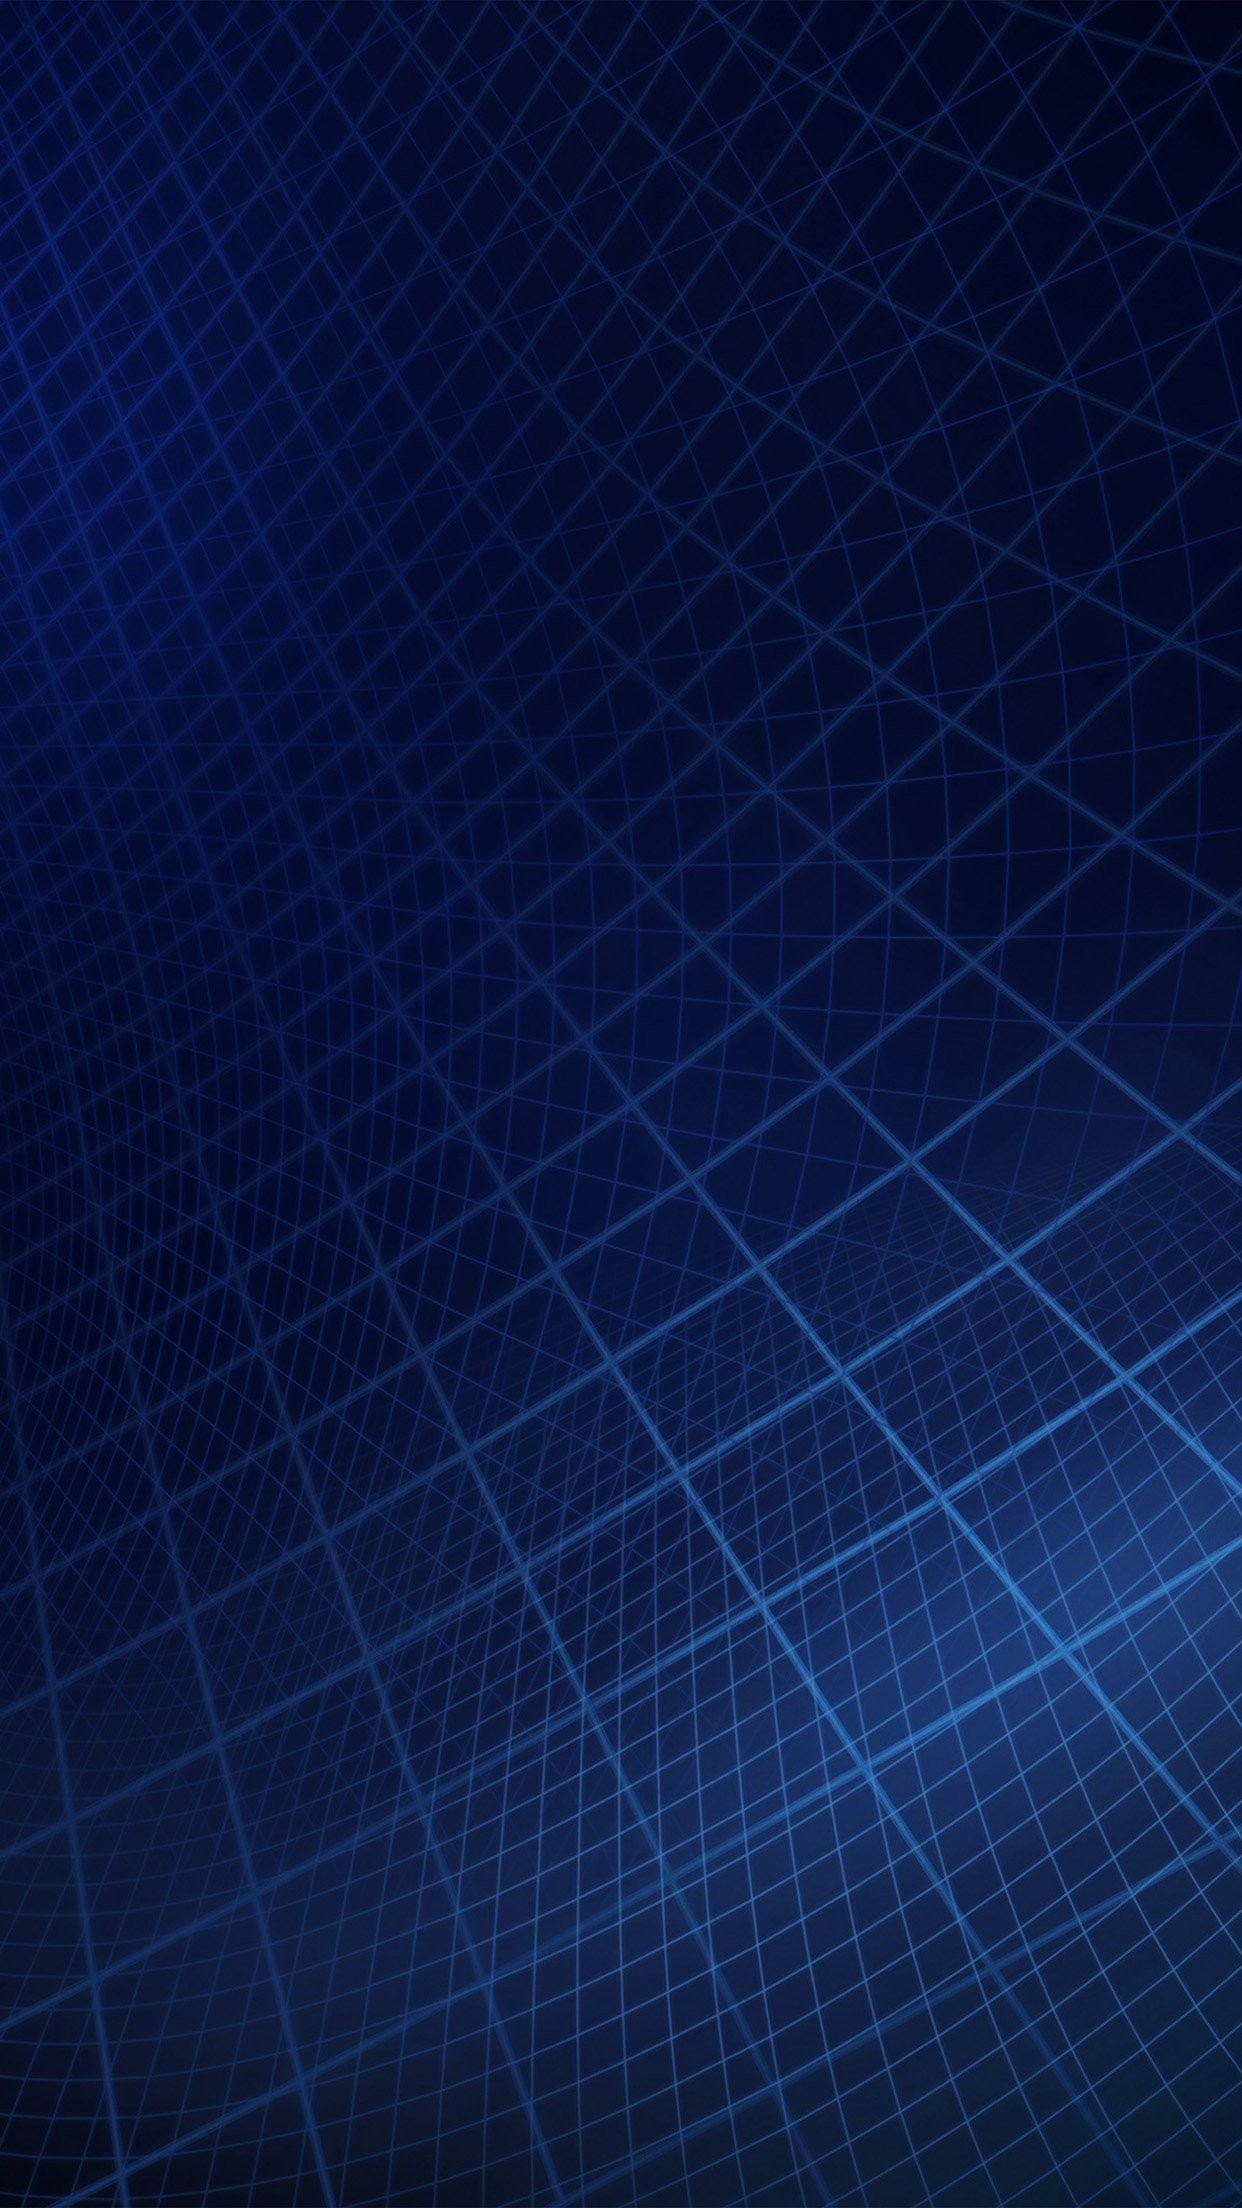 Illusion Wallpaper Iphone Blue Android Wallpaper 77 Images